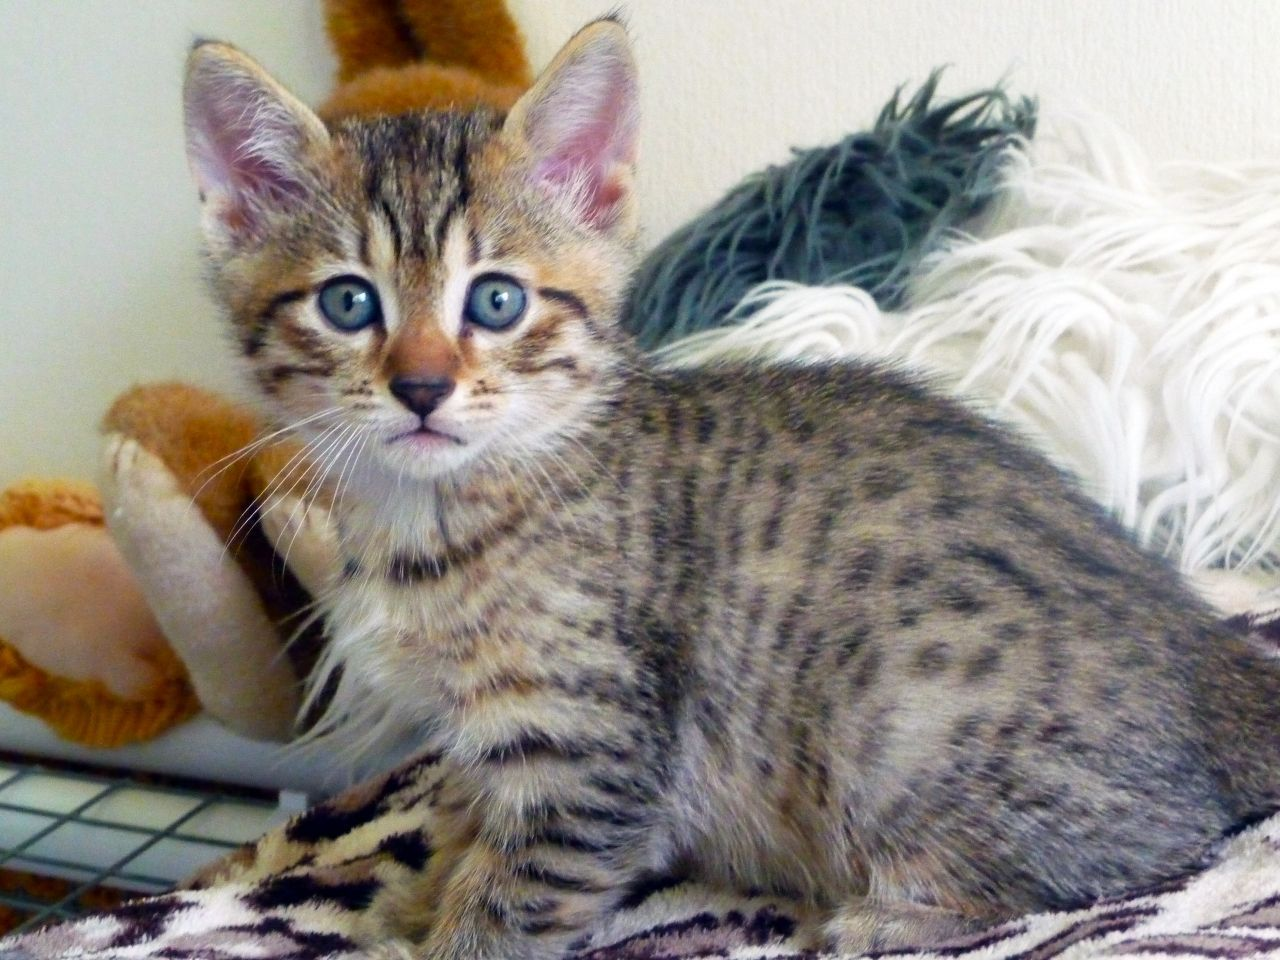 Egyptian Maus Cat Are A Small To Medium Sized Short Haired Cat Breed Along With The Bahraini Dilmun Cat They Are One Of Kitten For Sale Cattery Egyptian Mau